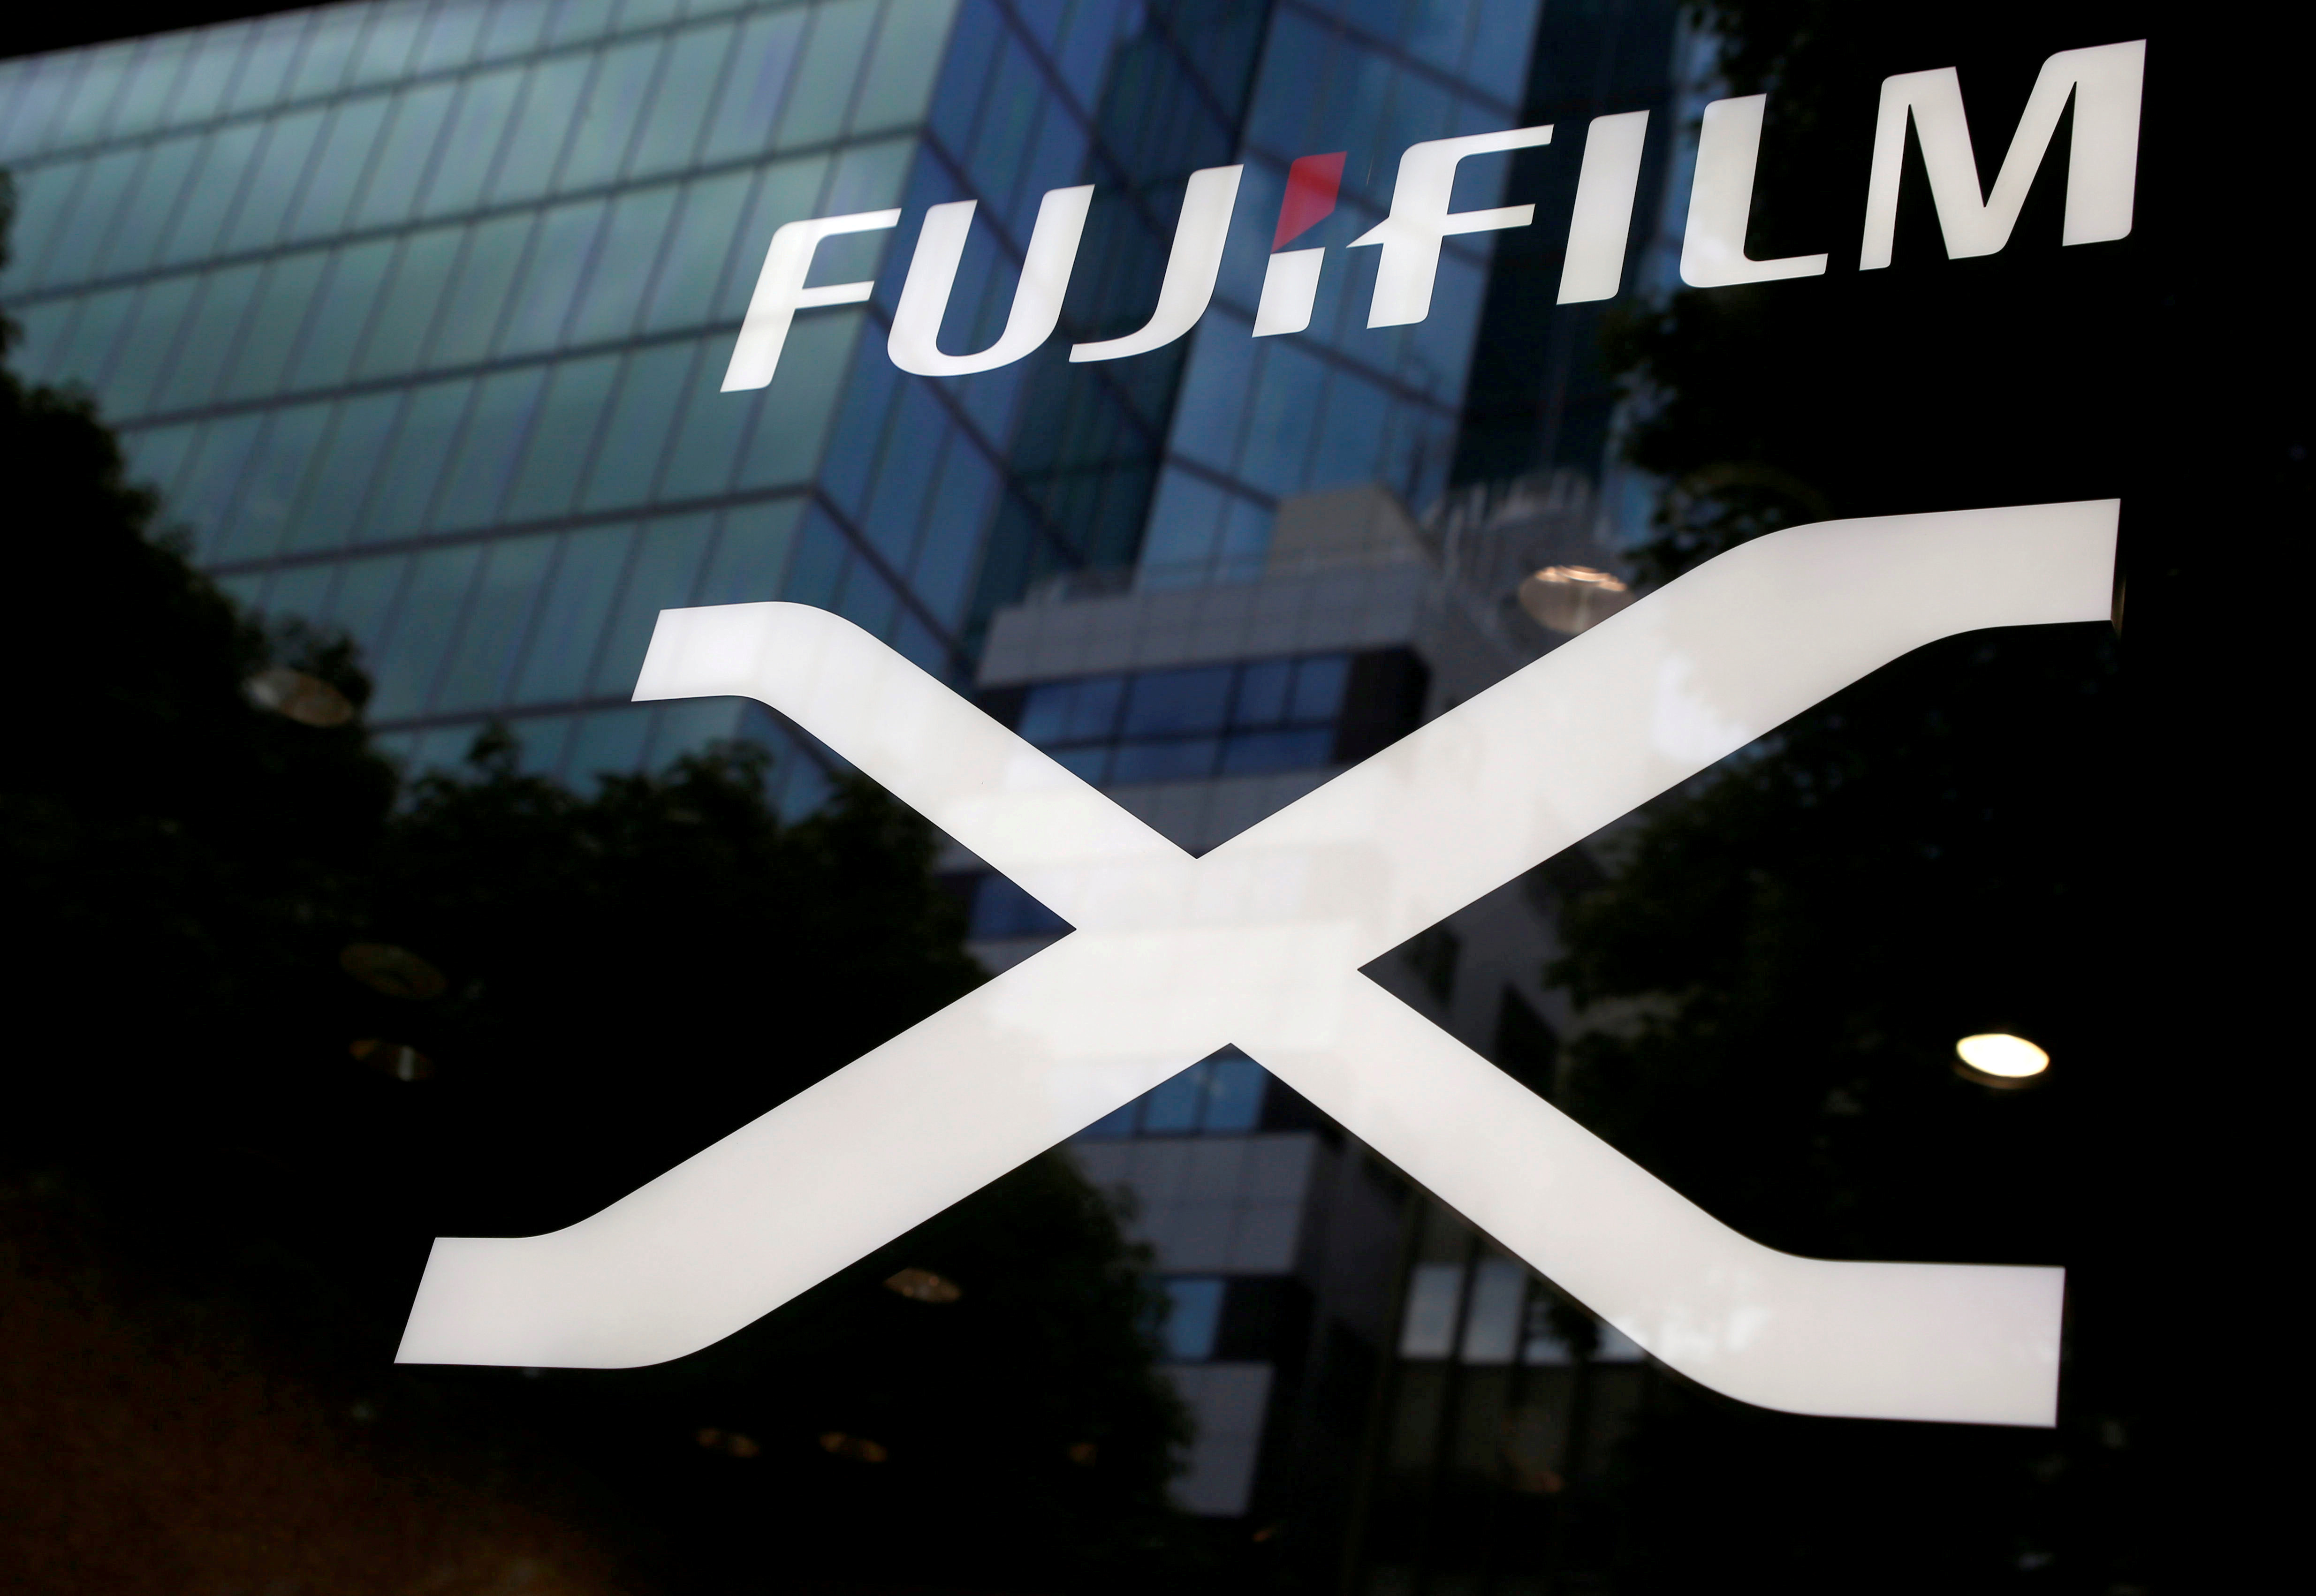 Fujifilm's company logo (top) is seen at its exhibition hall nearby the headquarters of Fujifilm Holdings Corp in Tokyo, Japan June 12, 2017. REUTERS/Kim Kyung-Hoon/File Photo